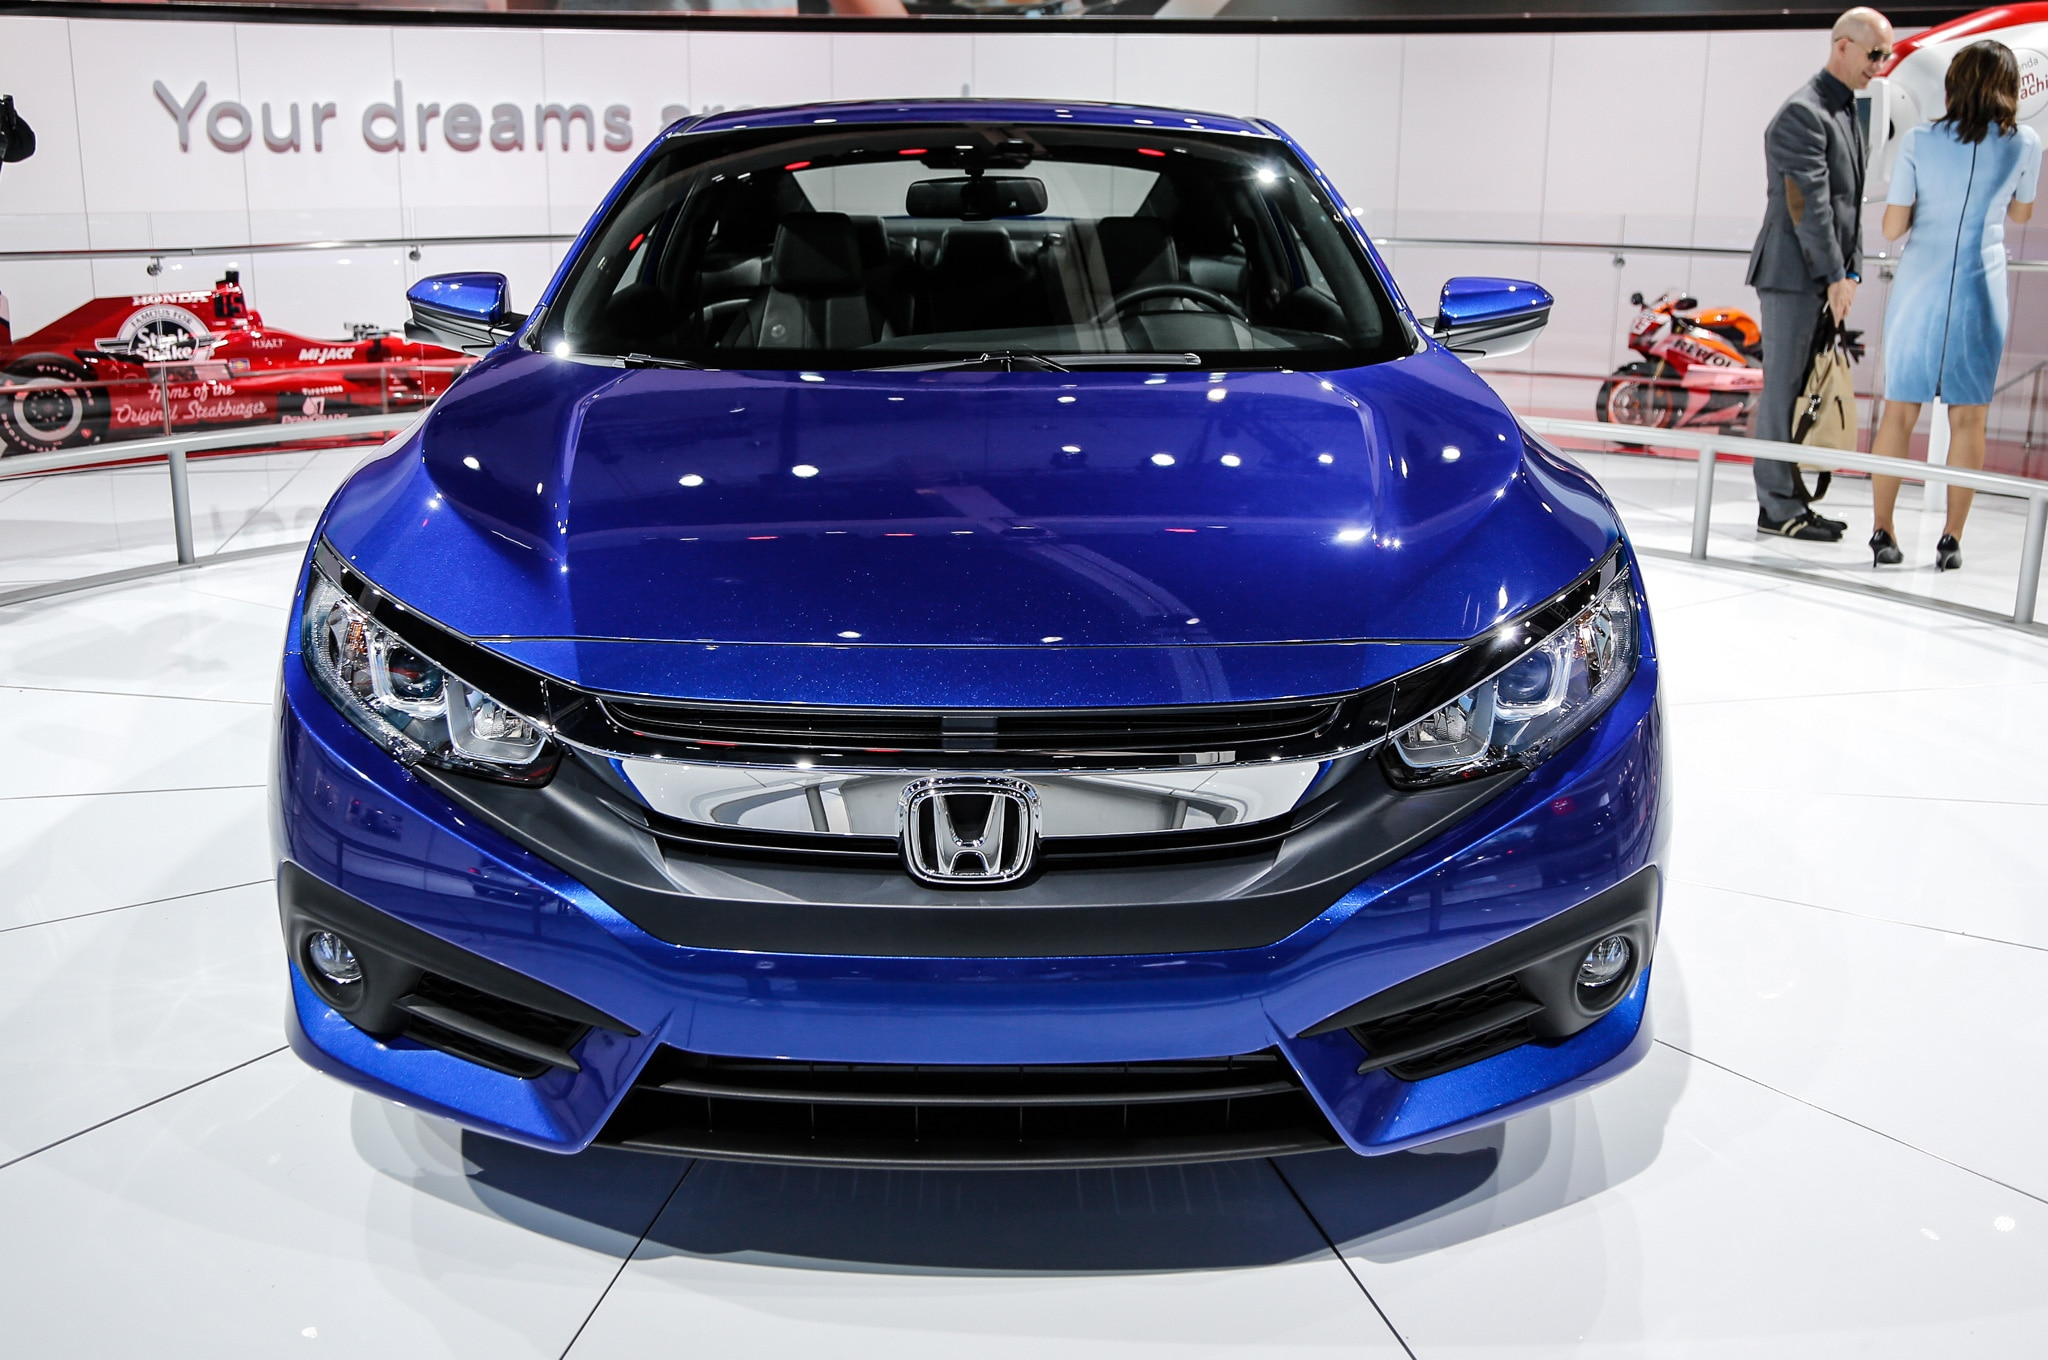 2016 honda civic coupe debuts with sportier styling roomier interior. Black Bedroom Furniture Sets. Home Design Ideas